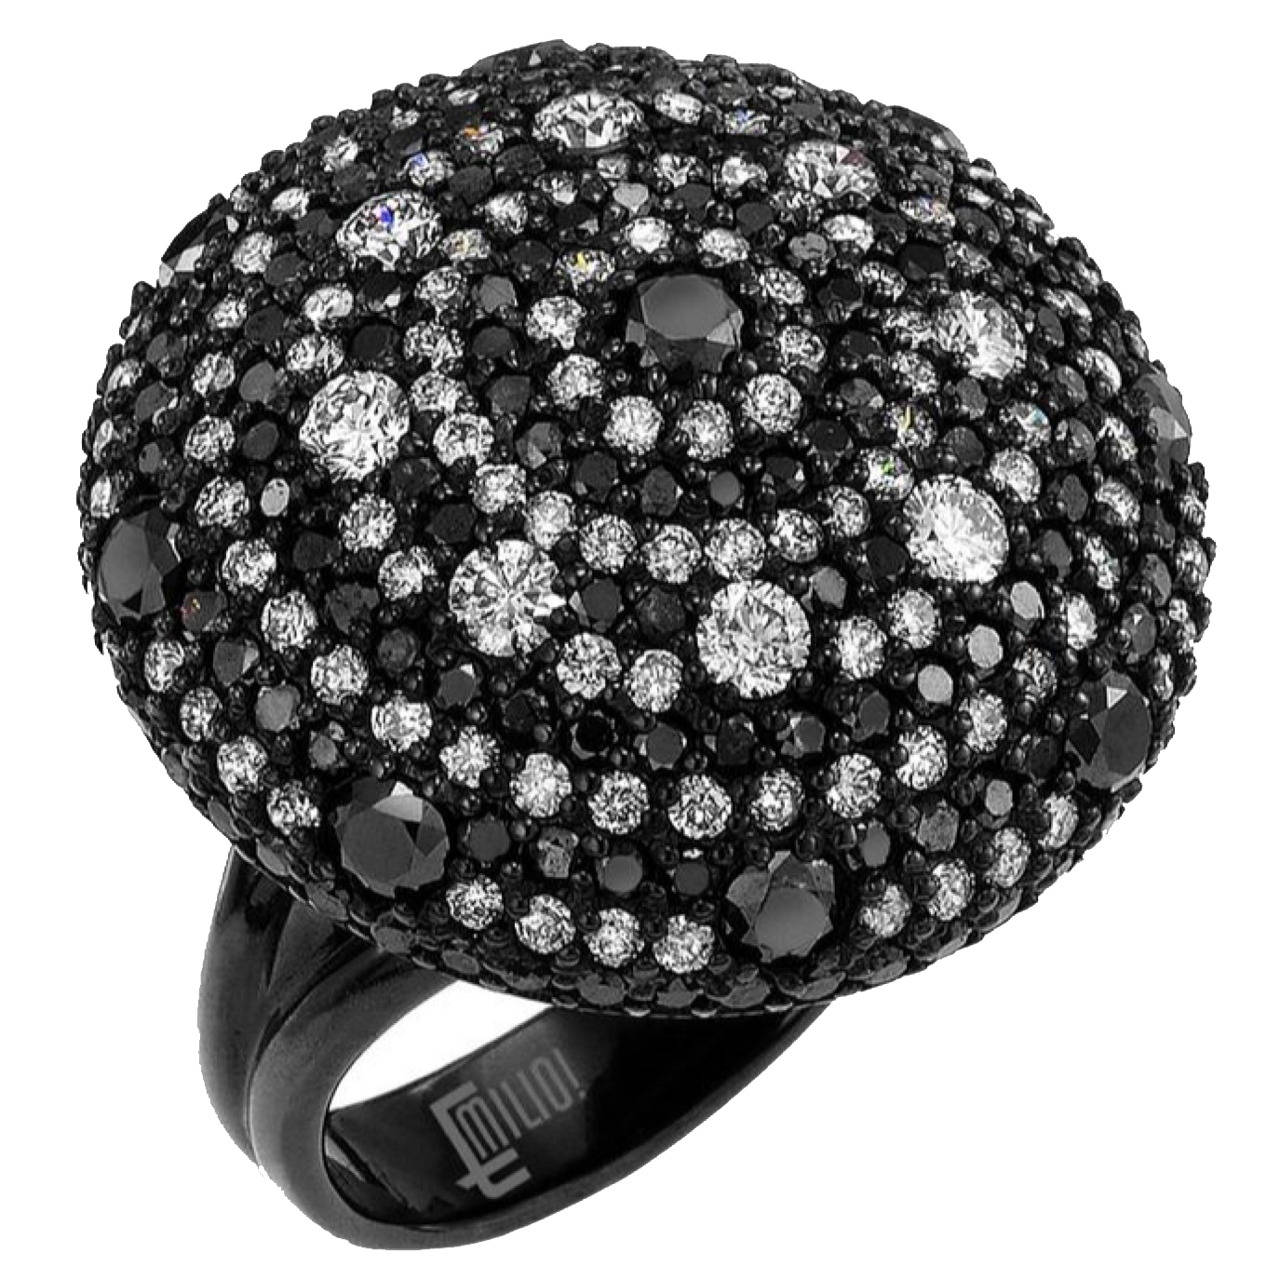 Black and White Diamond Gold Ring For Sale at 1stdibs